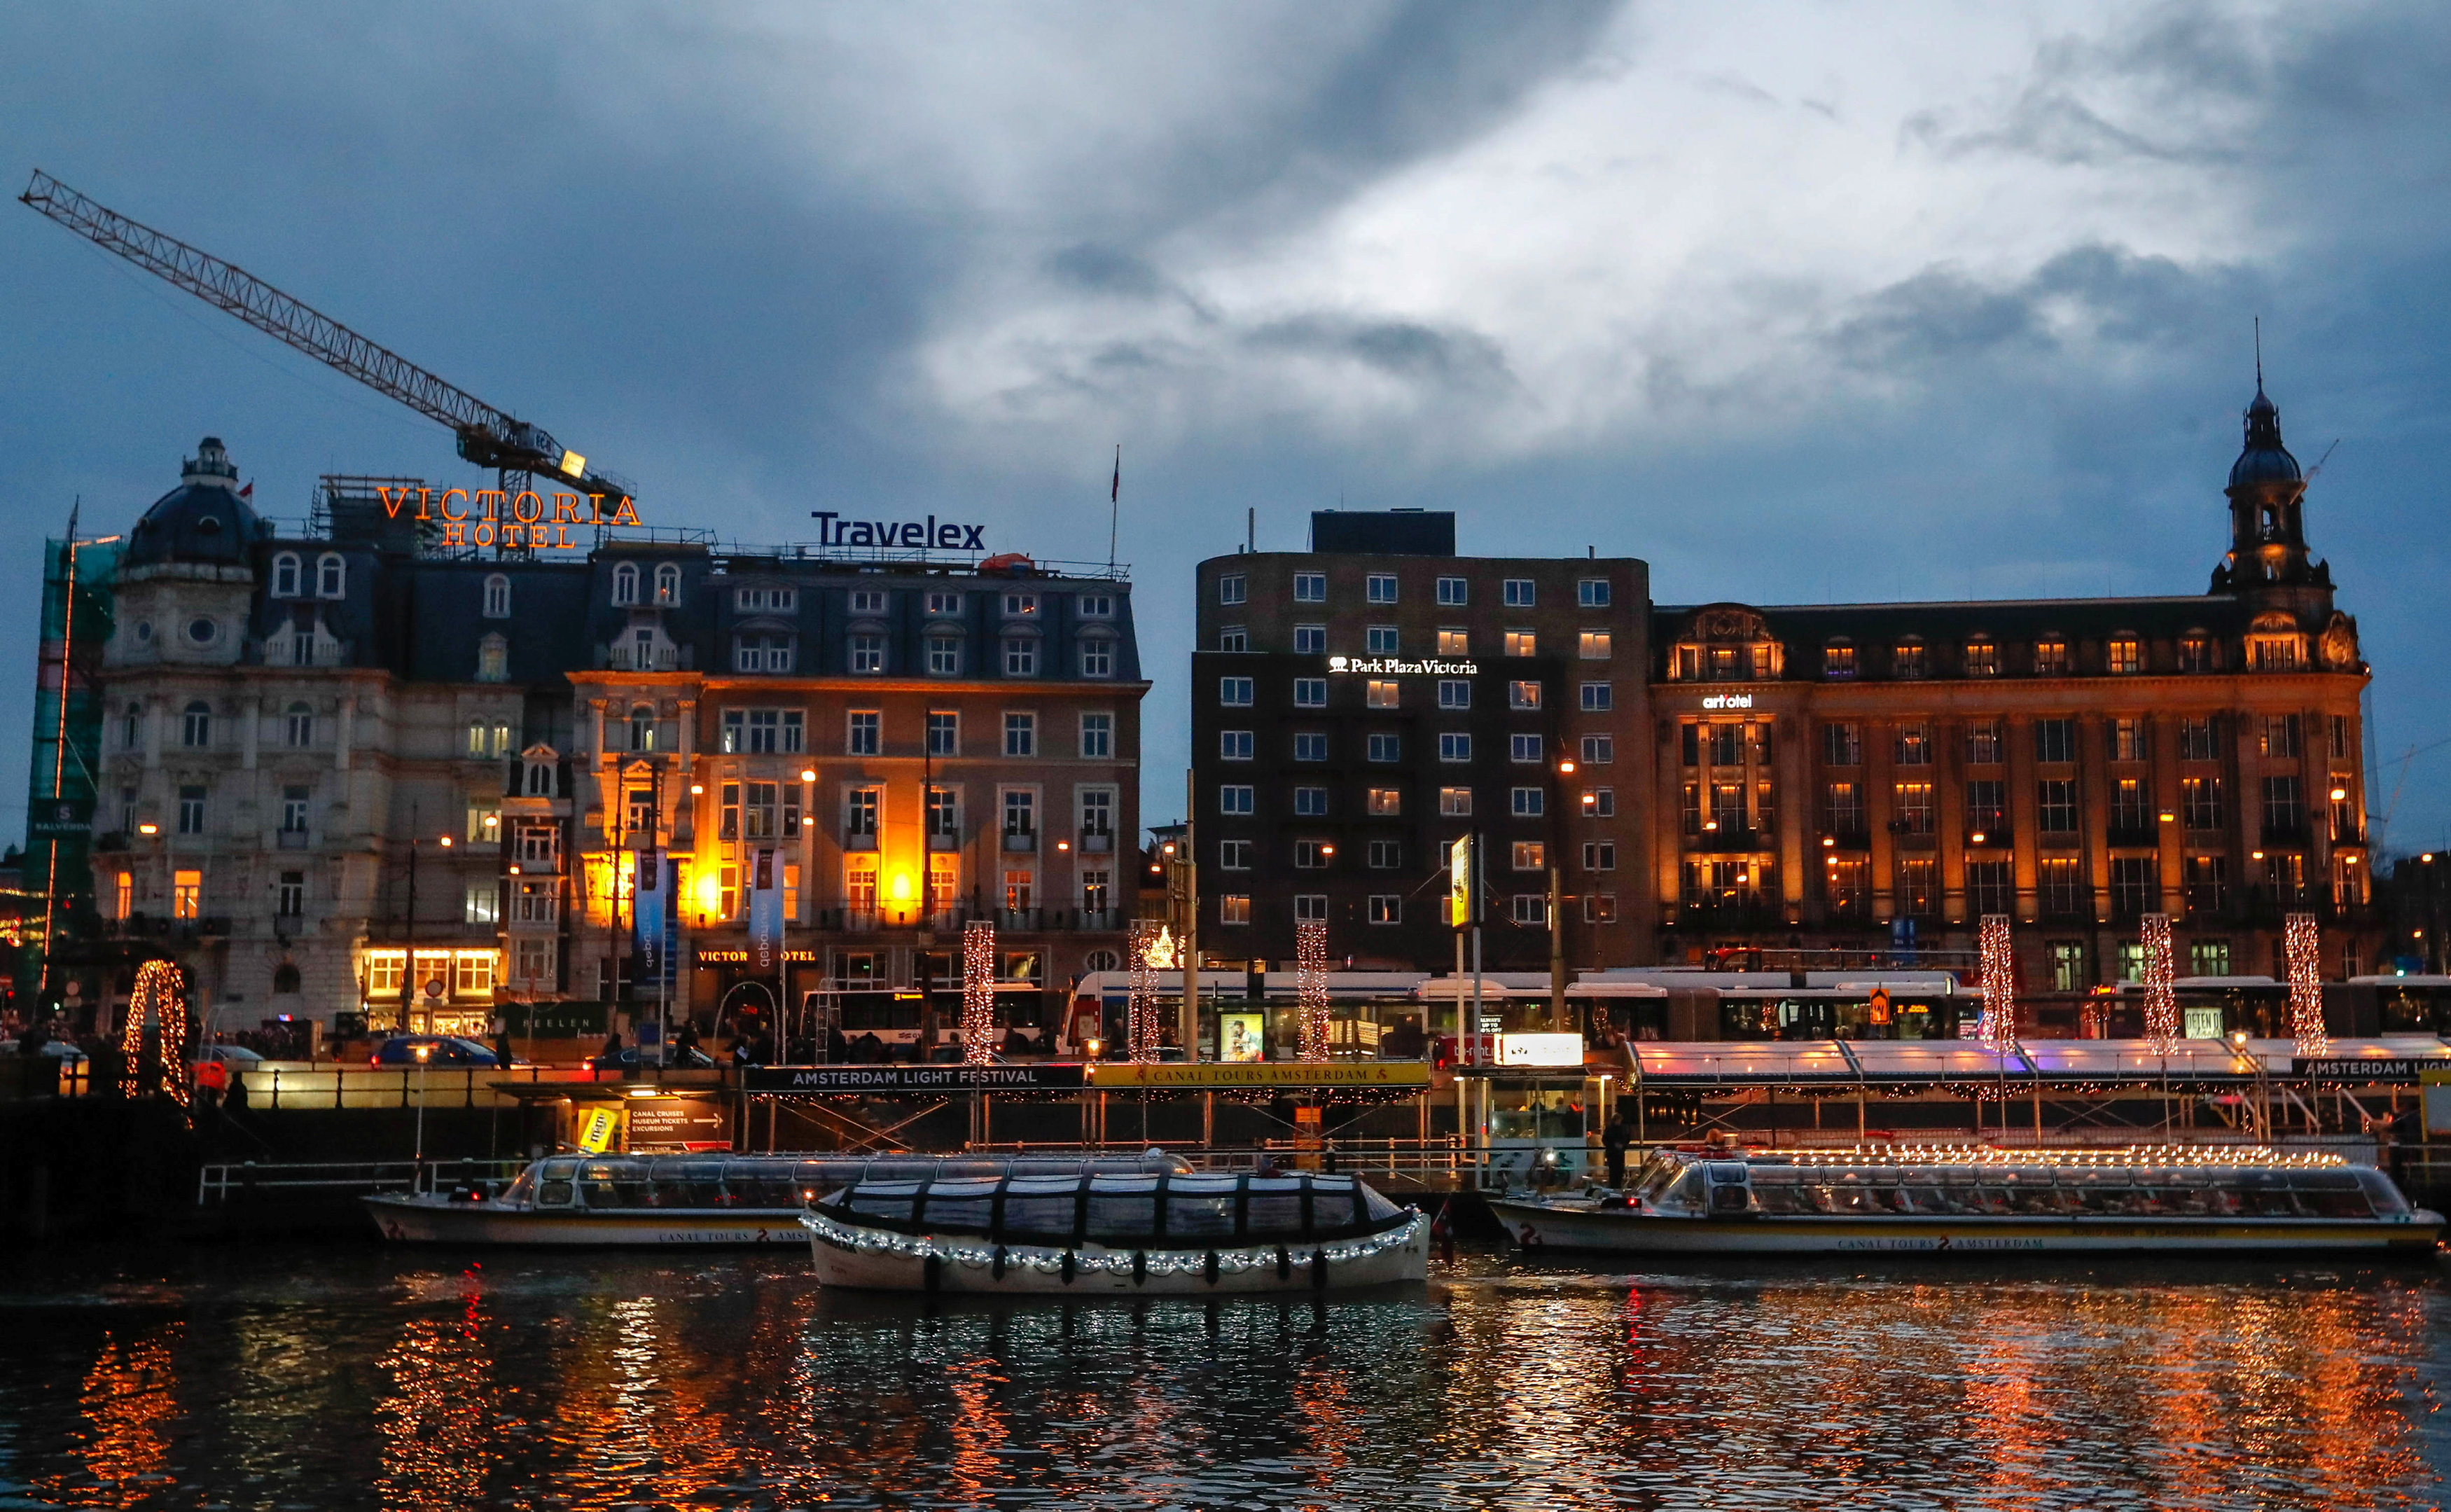 Touristic boats are illuminated while cruising on a canal in central Amsterdam